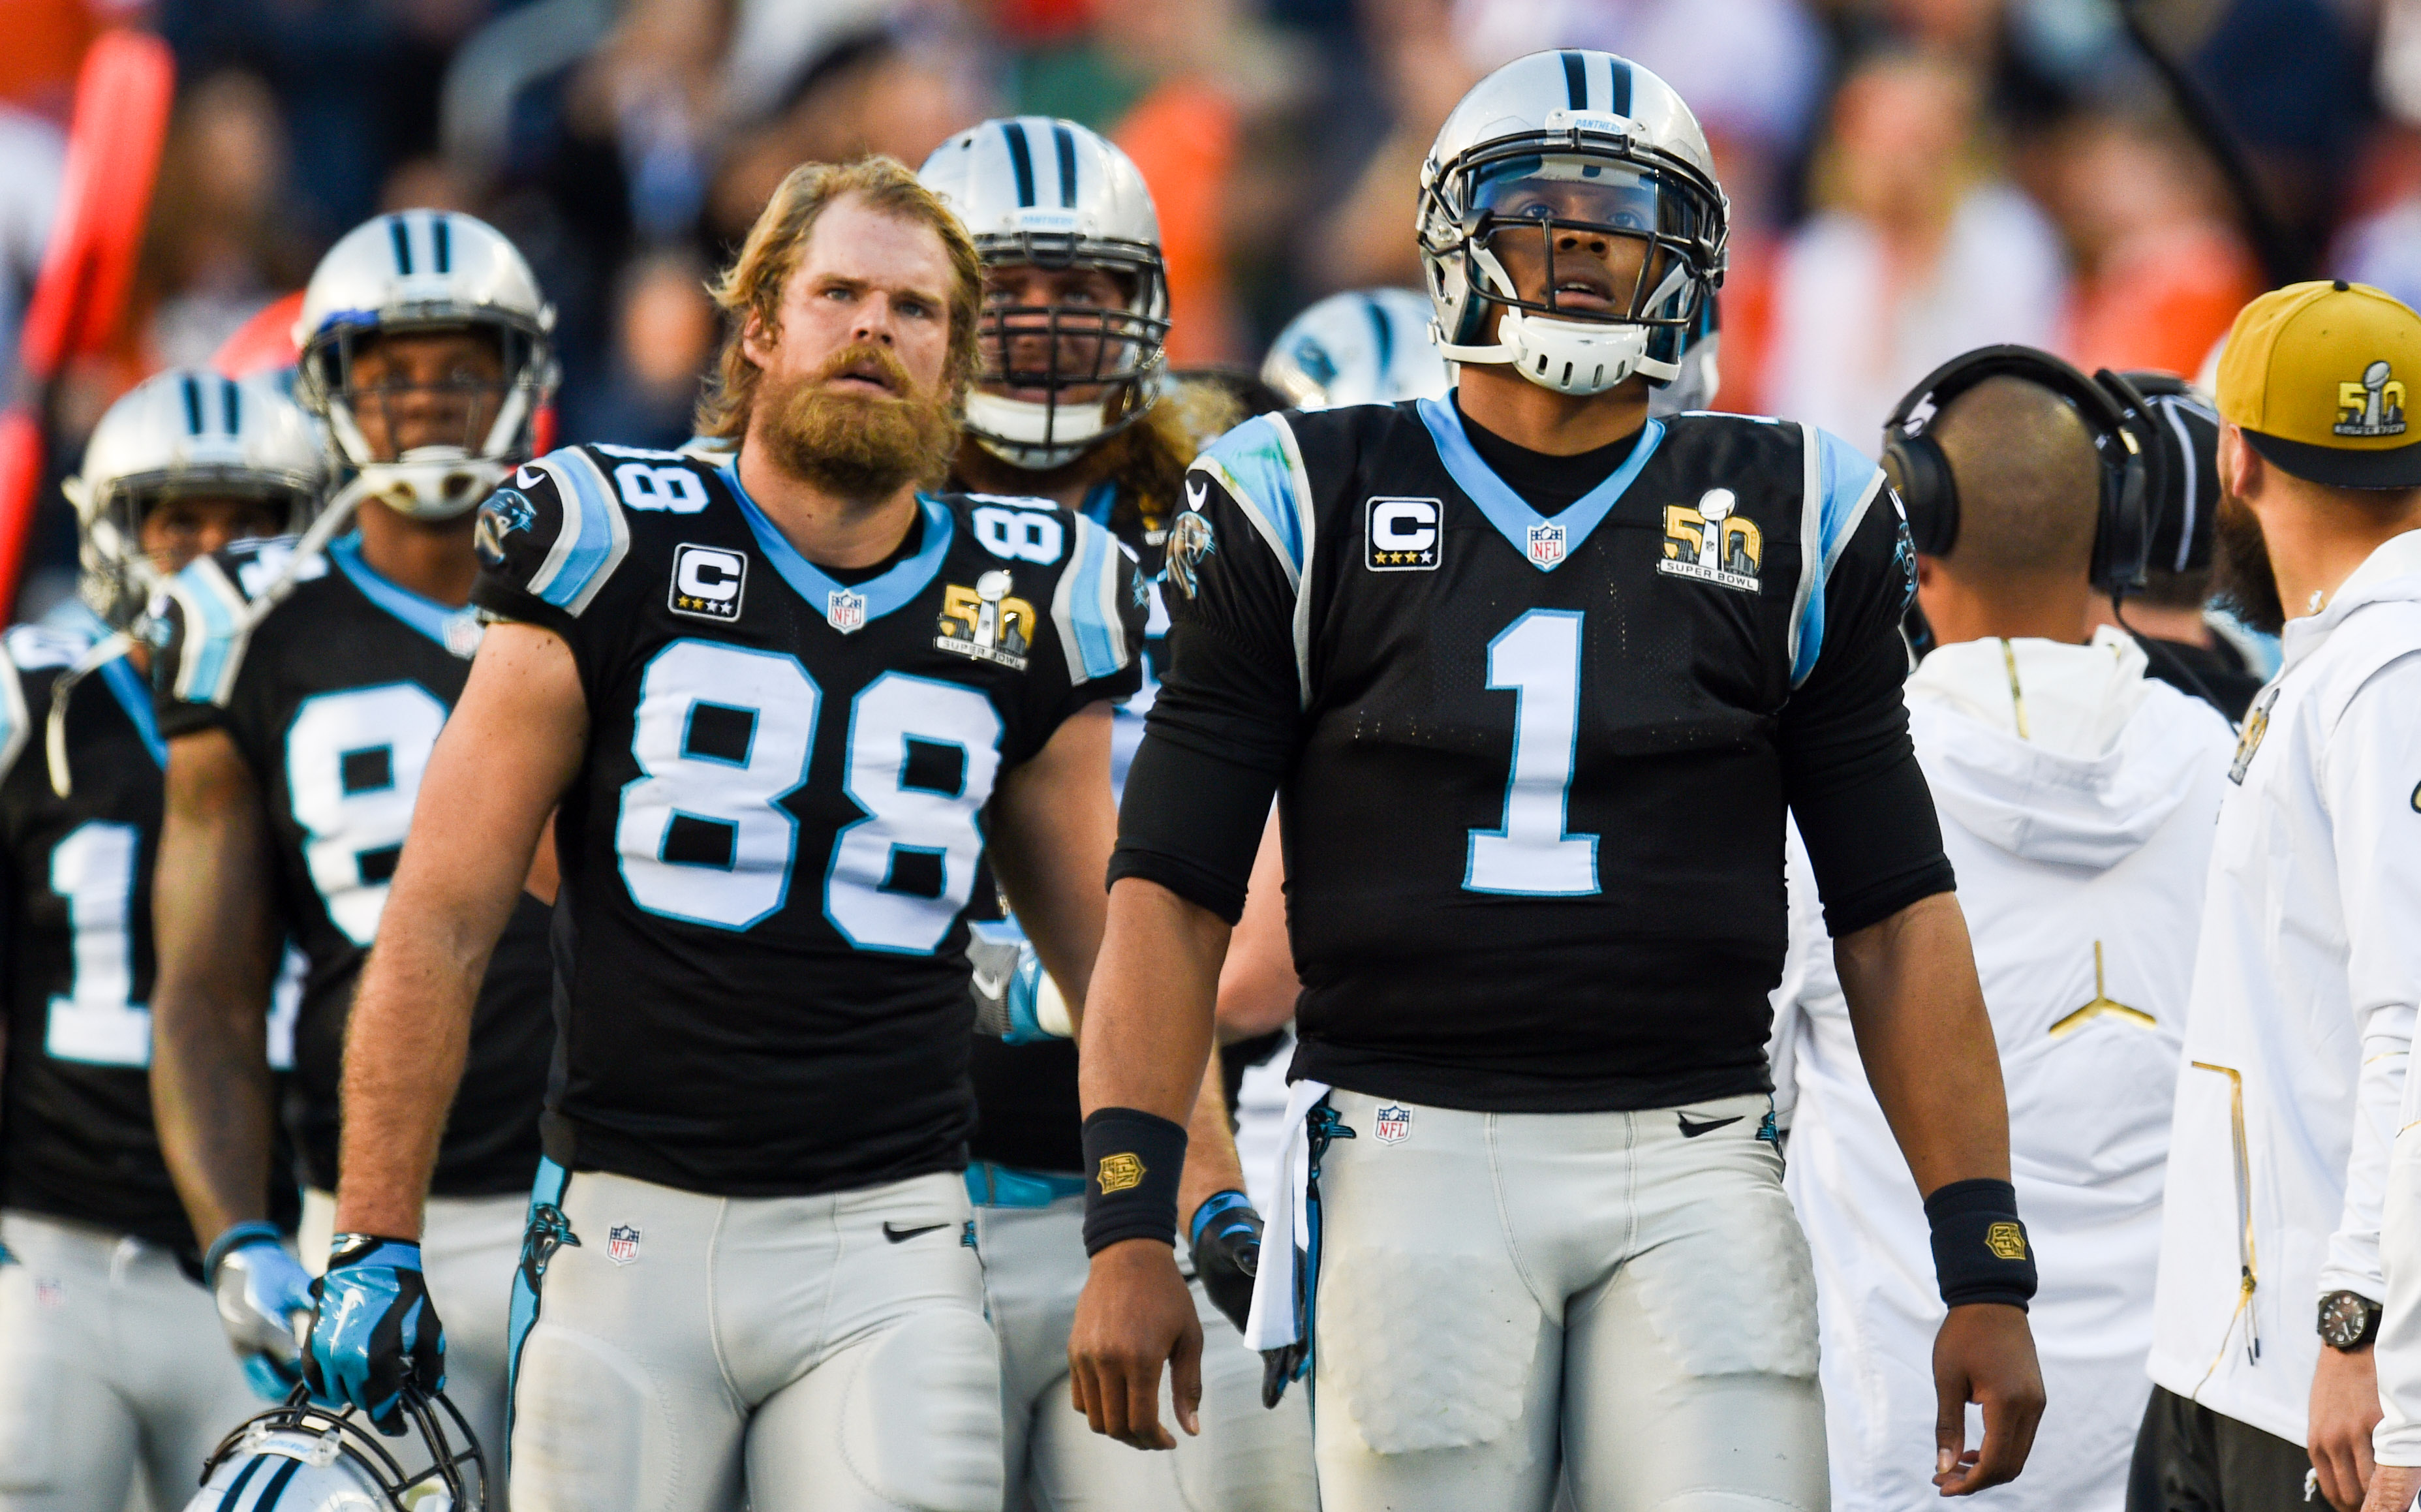 Carolina Panthers: Team records likely to be broken in 2017